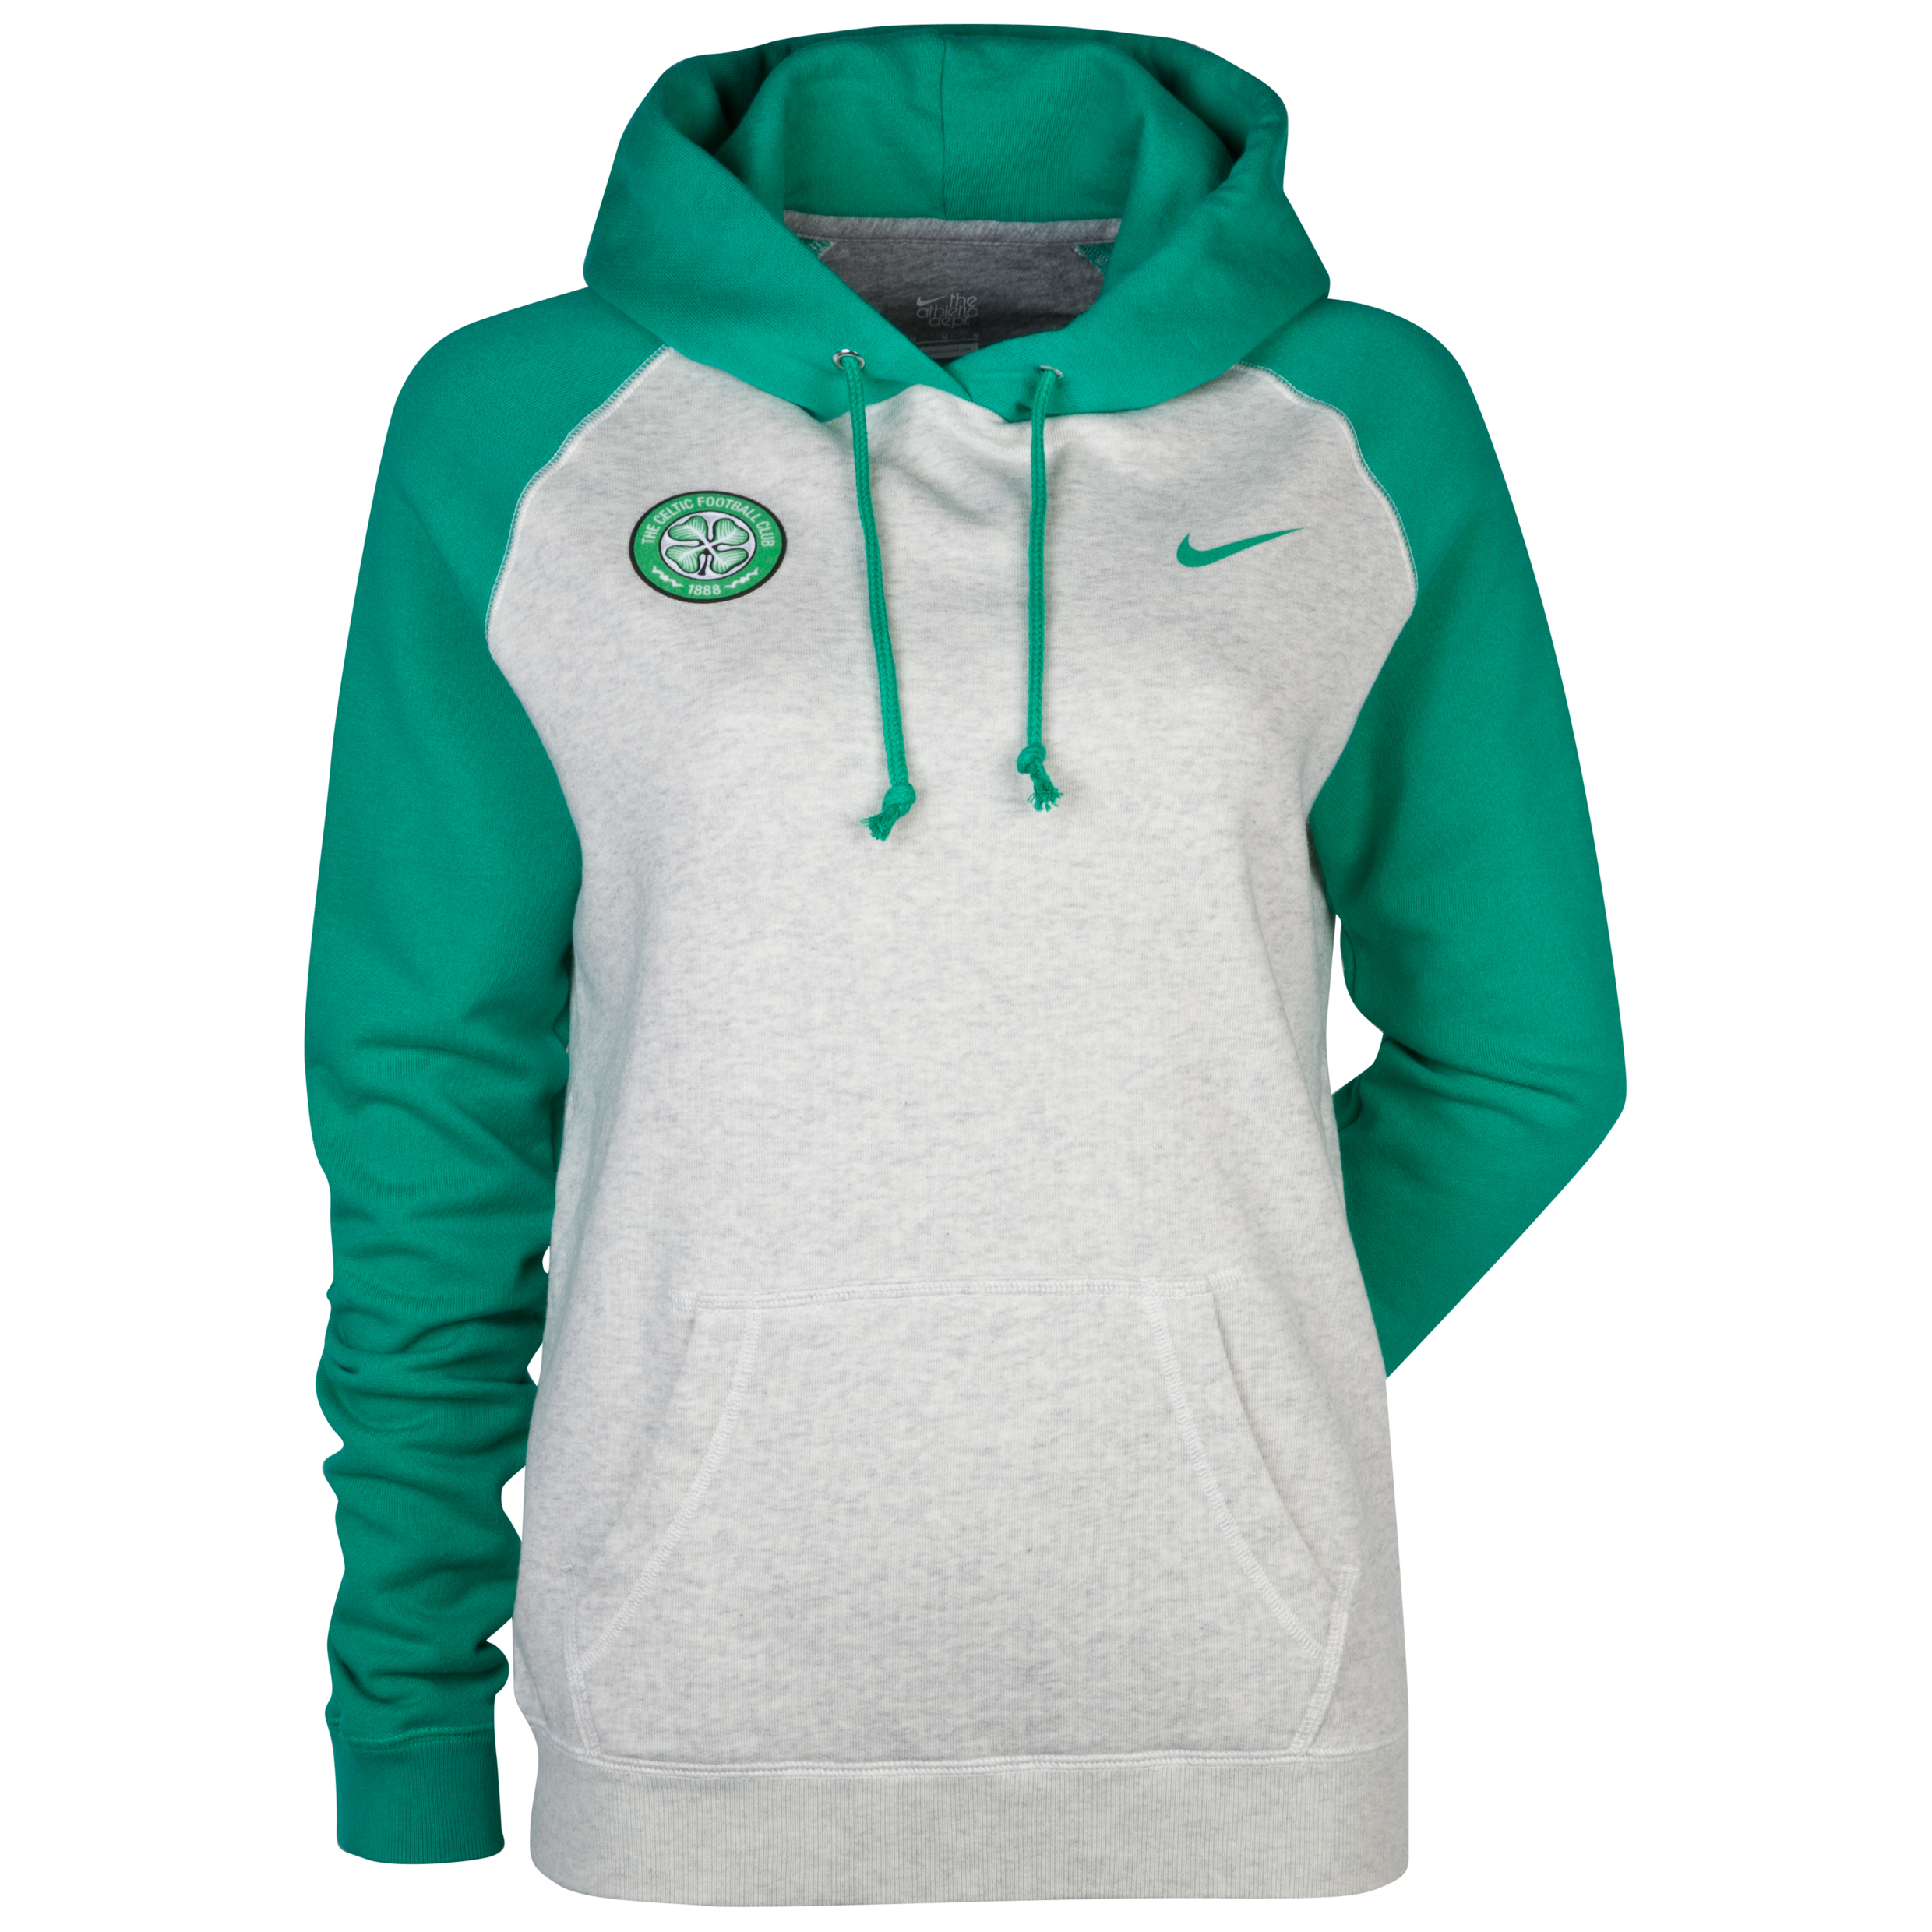 Celtic Raglan Sleeve Hoody  - Oatmeal Heather/Stadium Green - Womens